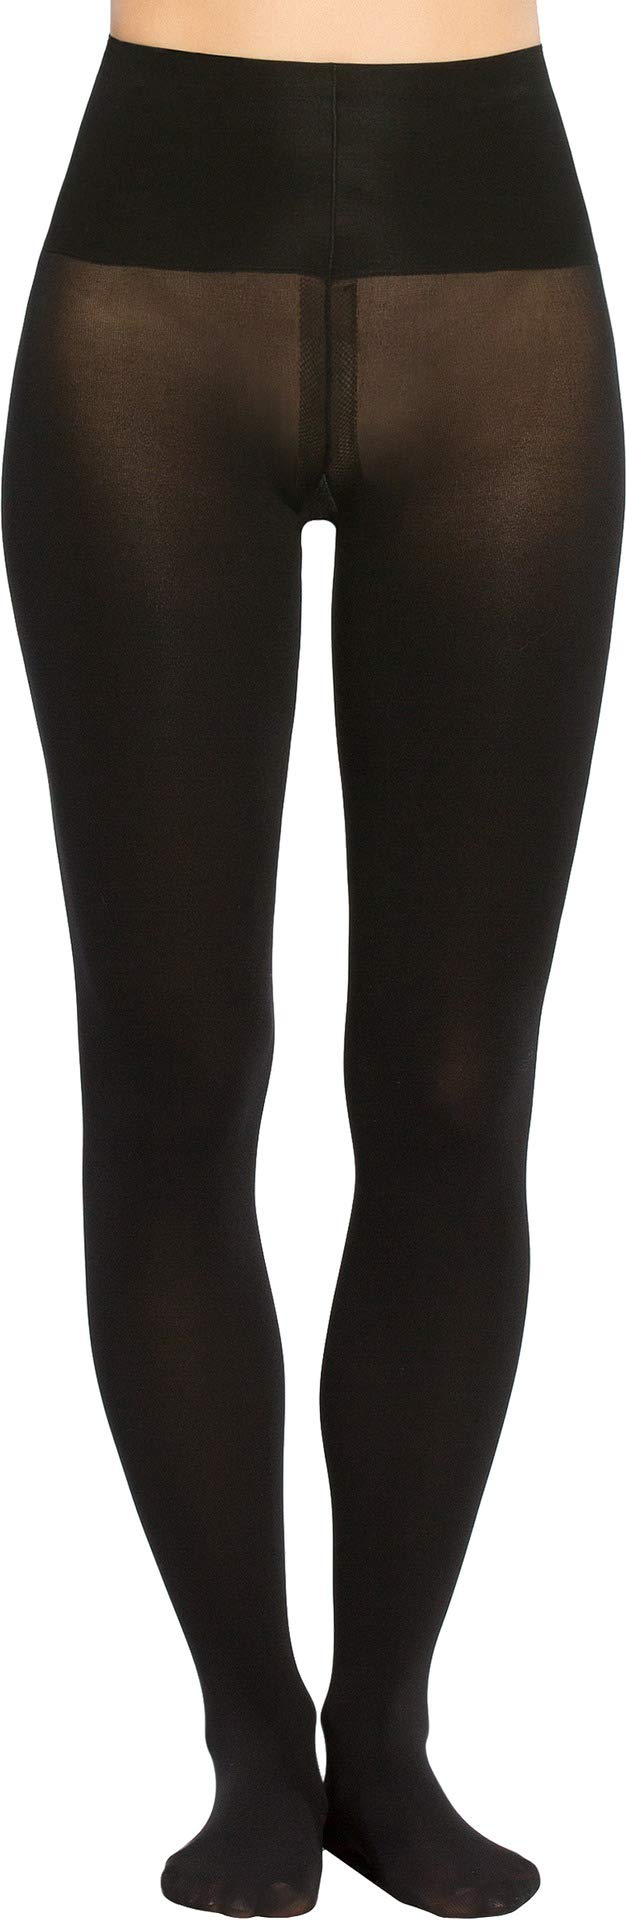 Spanx Women's Tummy Shaping Tights Very Black E by SPANX